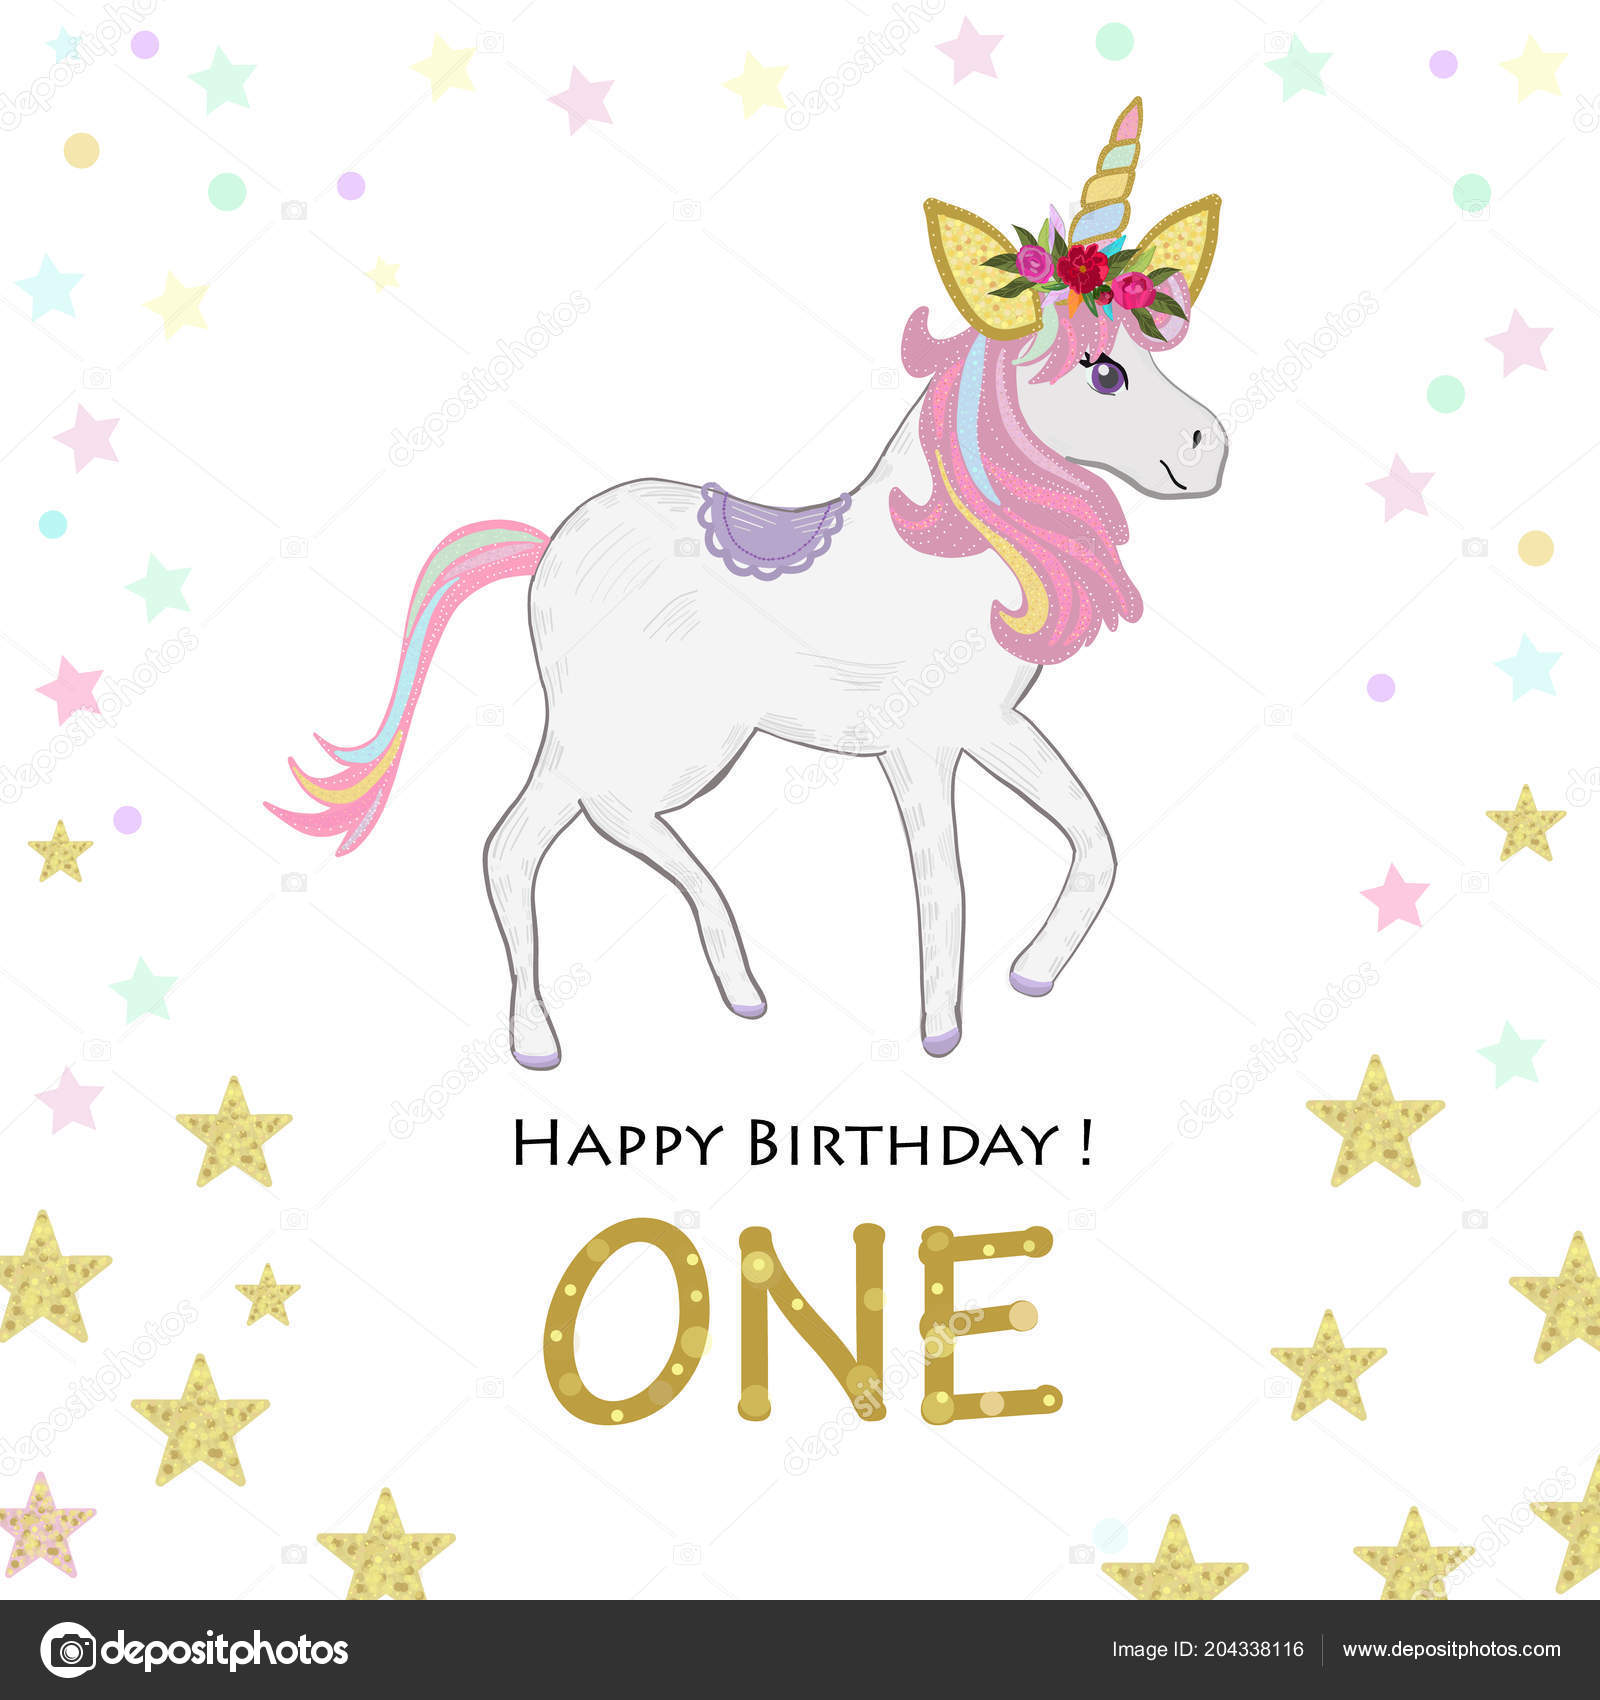 First Birthday Greeting One Magical Unicorn Invitation Party Stock Vector